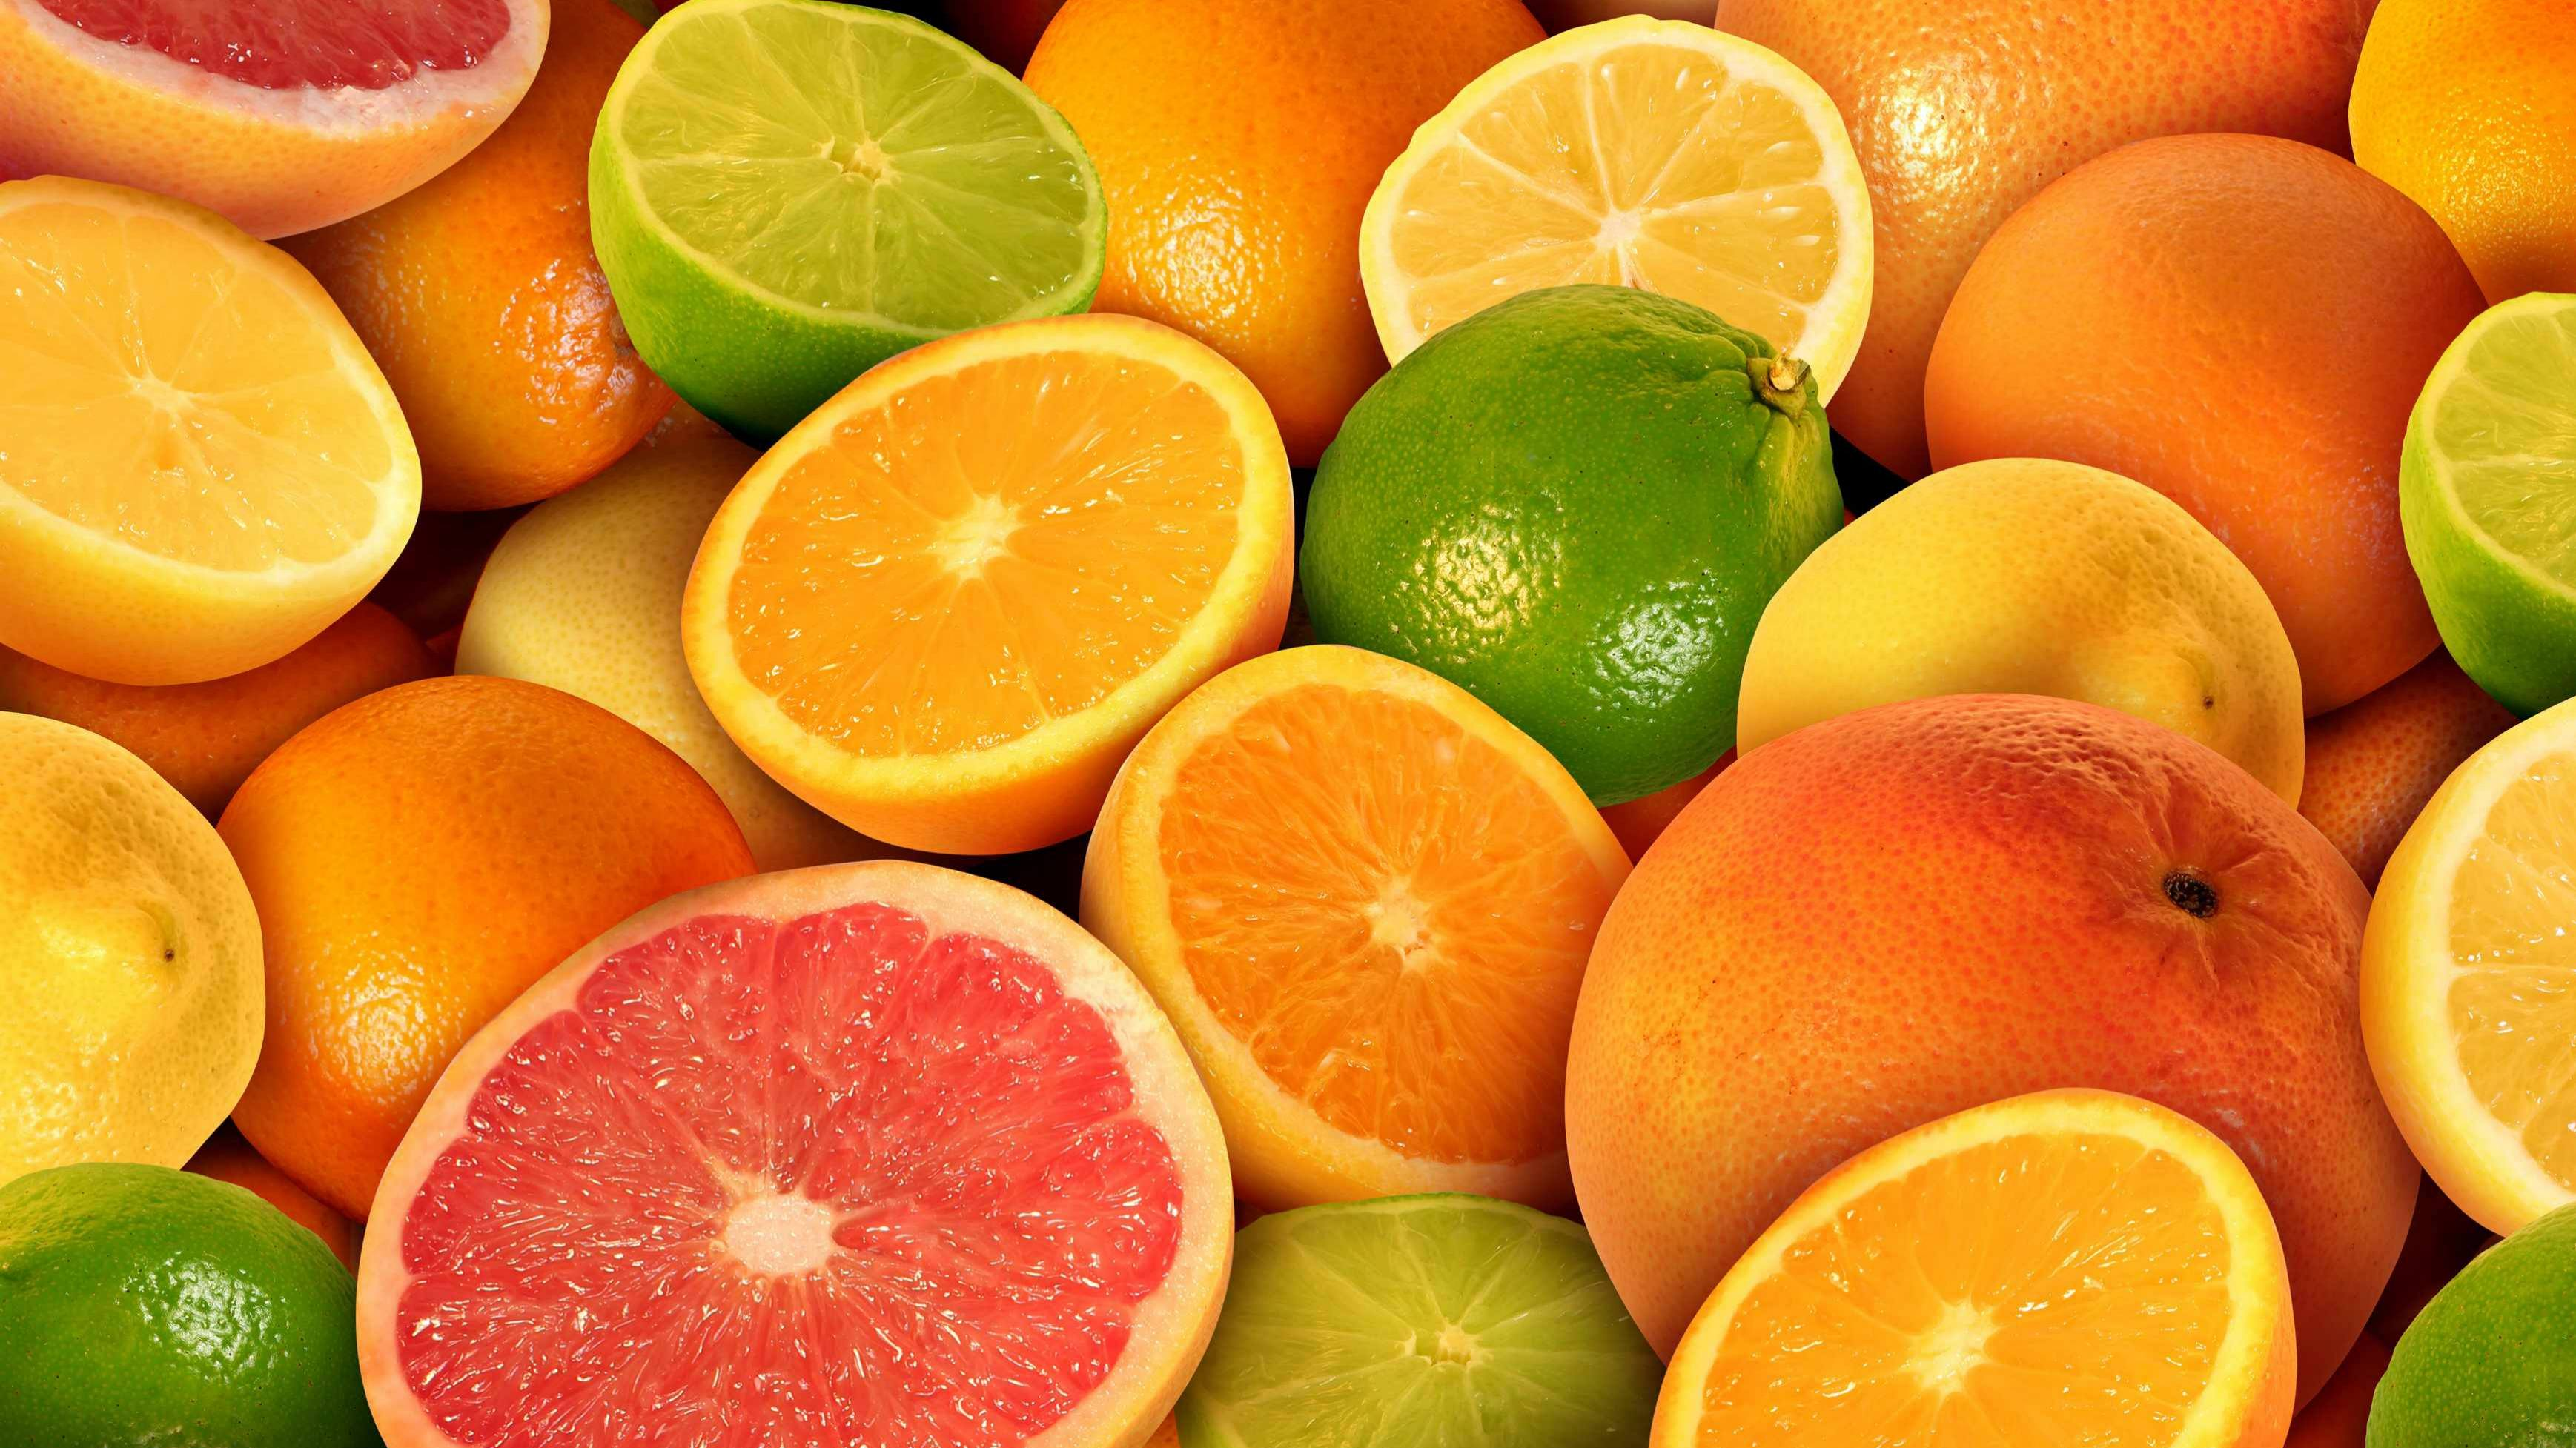 a pile of citrus fruits, oranges, lemons, limes and grapefruits